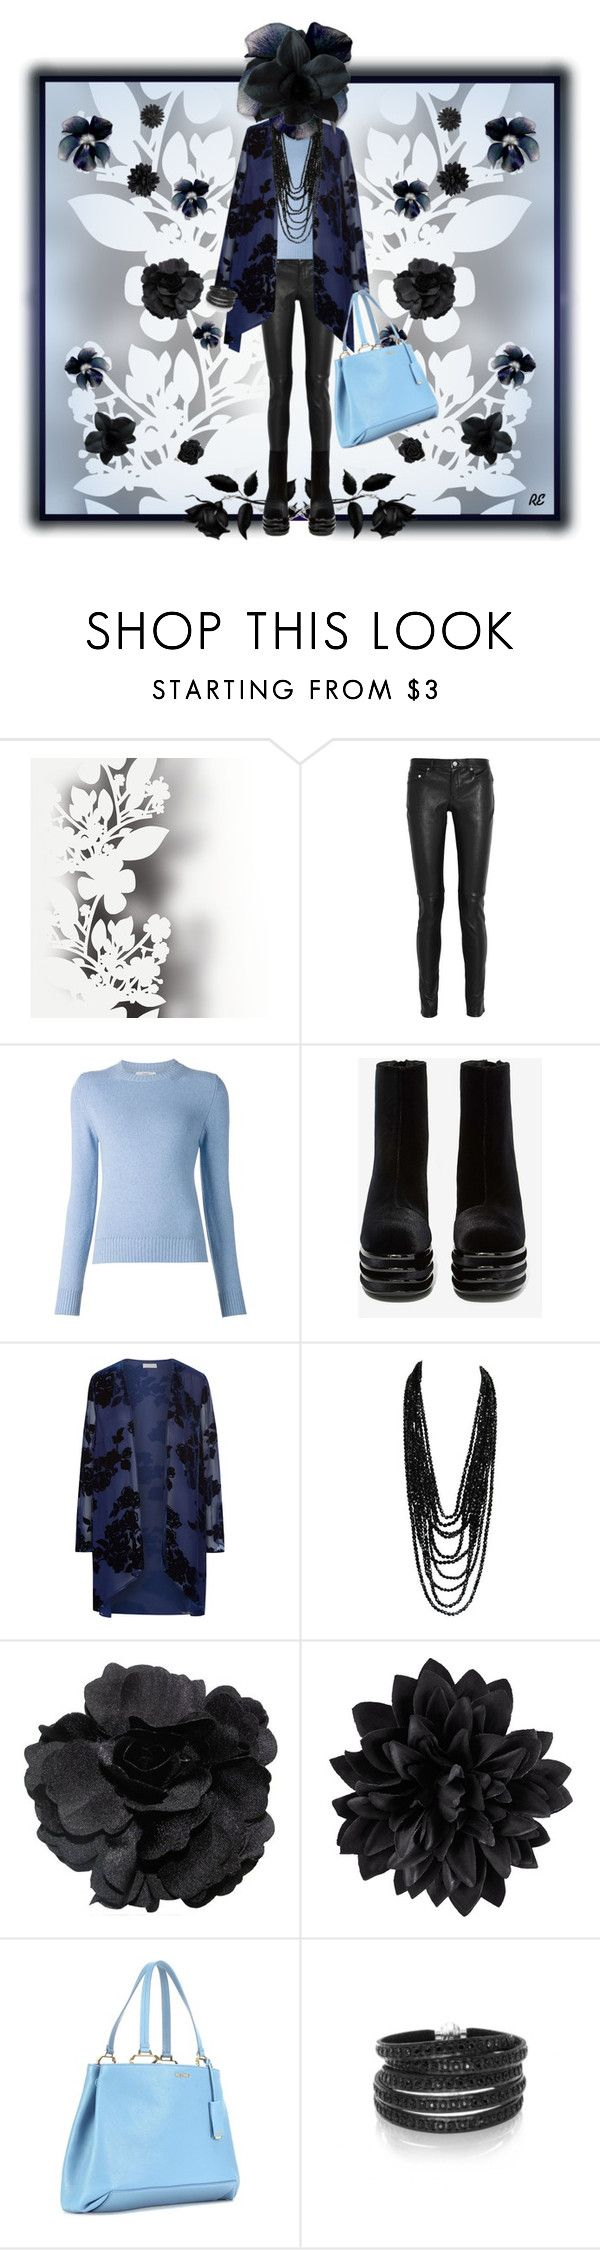 """""""Black Flowers"""" by rozelle ❤ liked on Polyvore featuring Mode, Élitis, Yves Saint Laurent, Barrie, Jeffrey Campbell, Jacques Vert, Black Orchid, H&M, Miu Miu und Sif Jakobs Jewellery"""